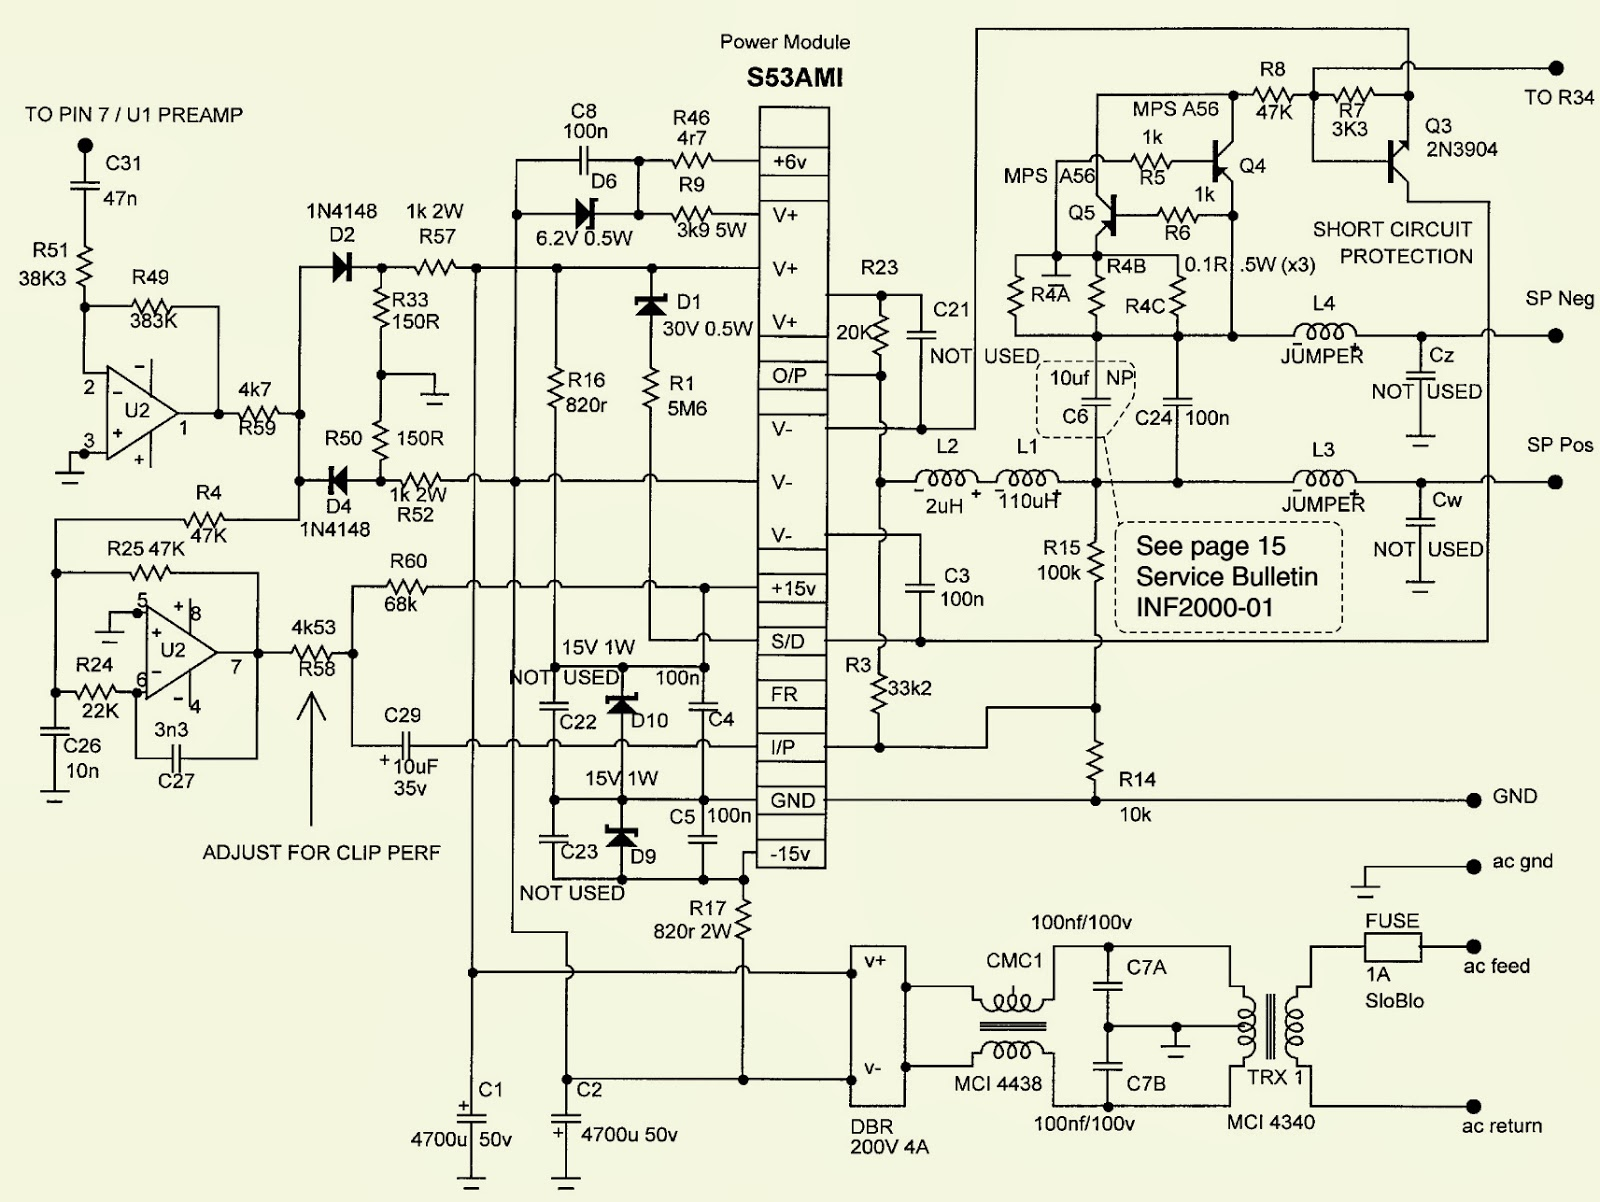 jeep wrangler wiring harness diagram images subwoofer wiring diagram get image about wiring diagram [ 1600 x 1202 Pixel ]